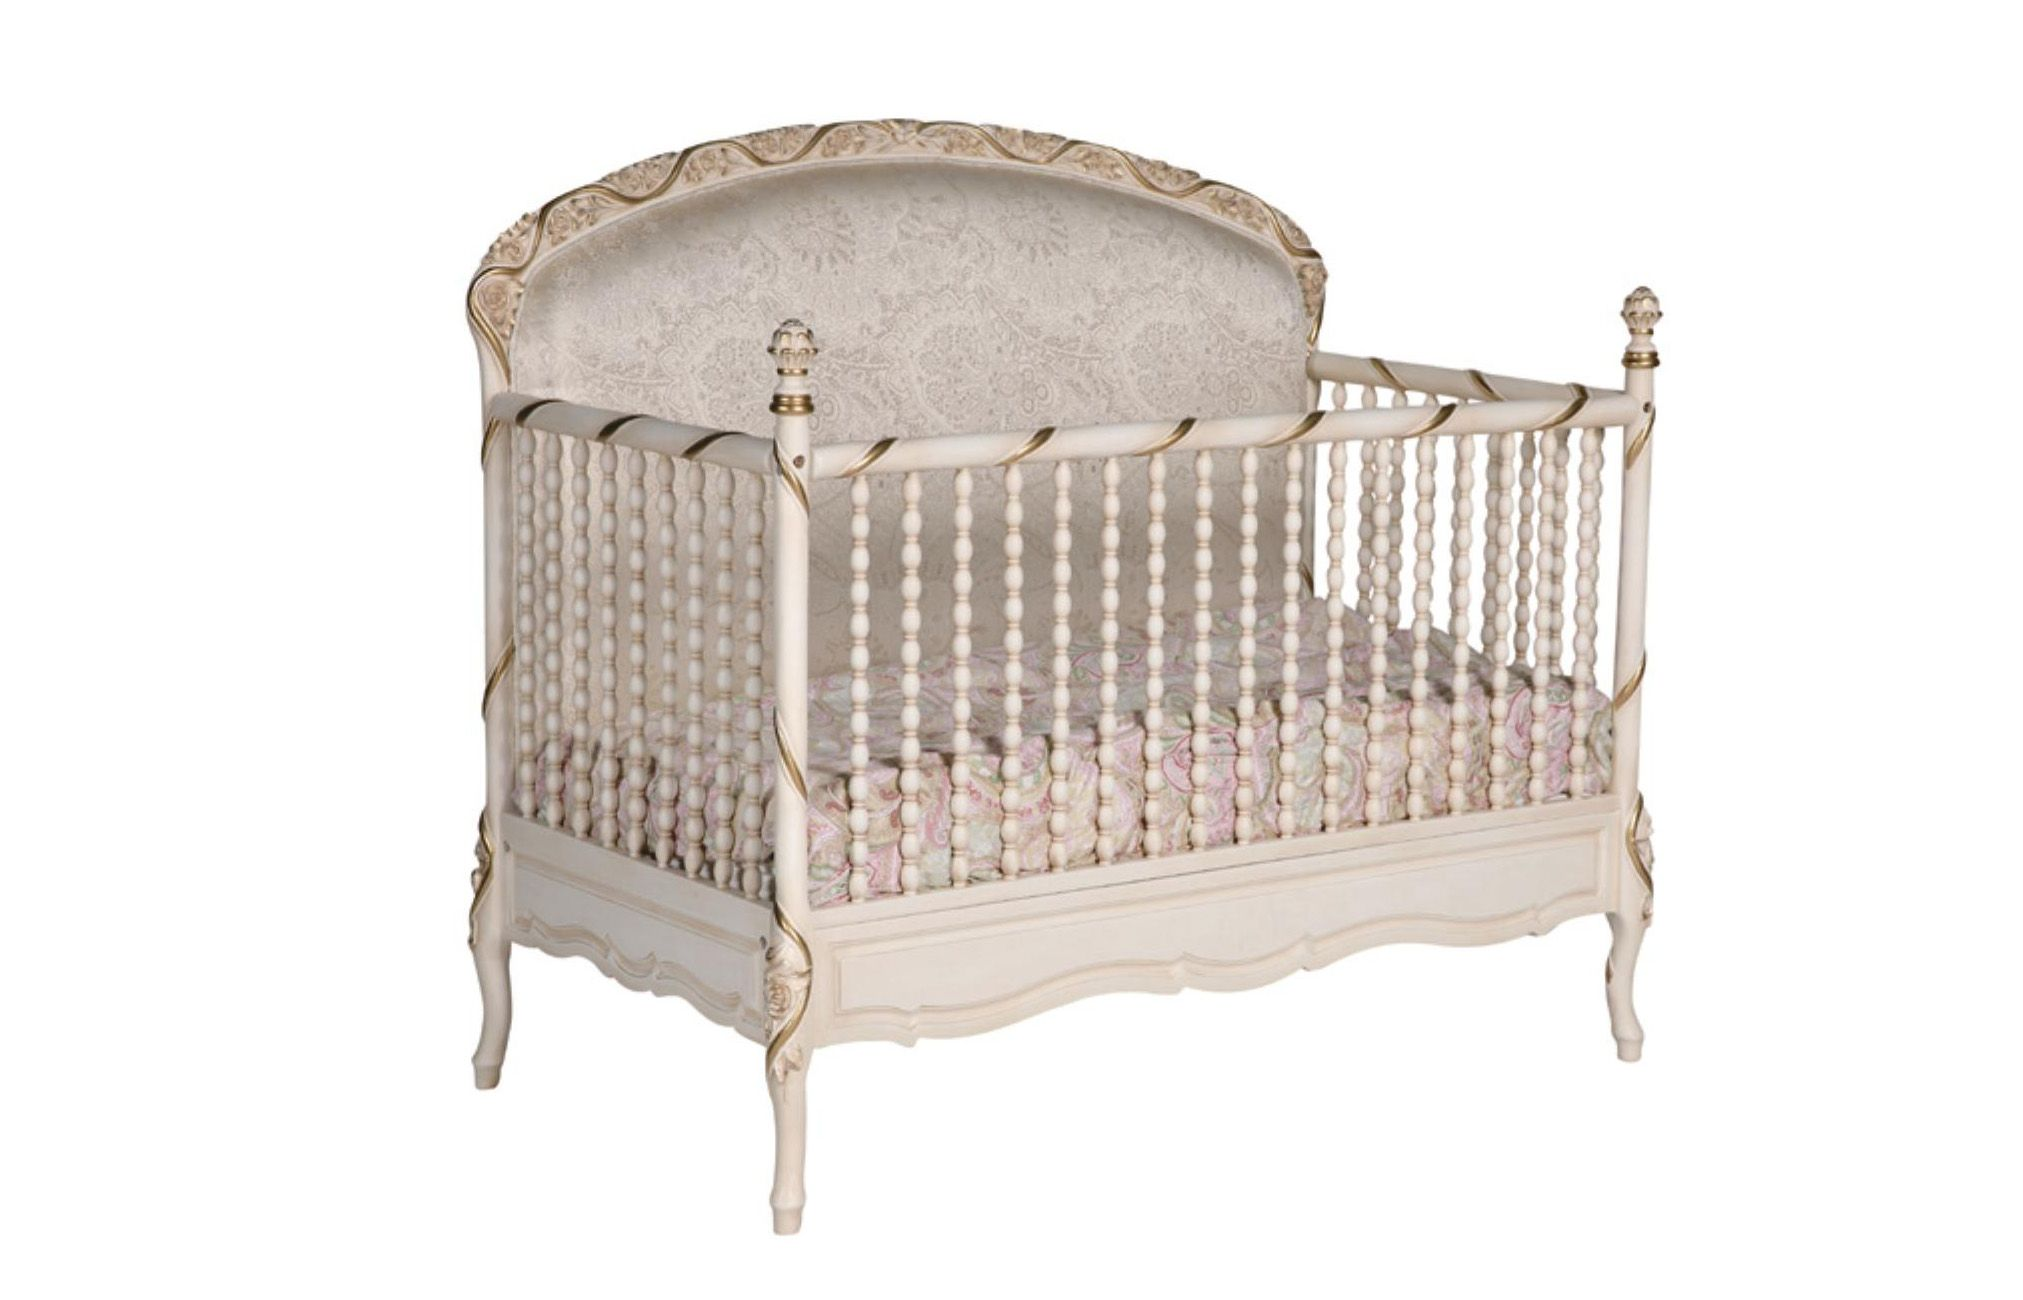 Luxury baby crib